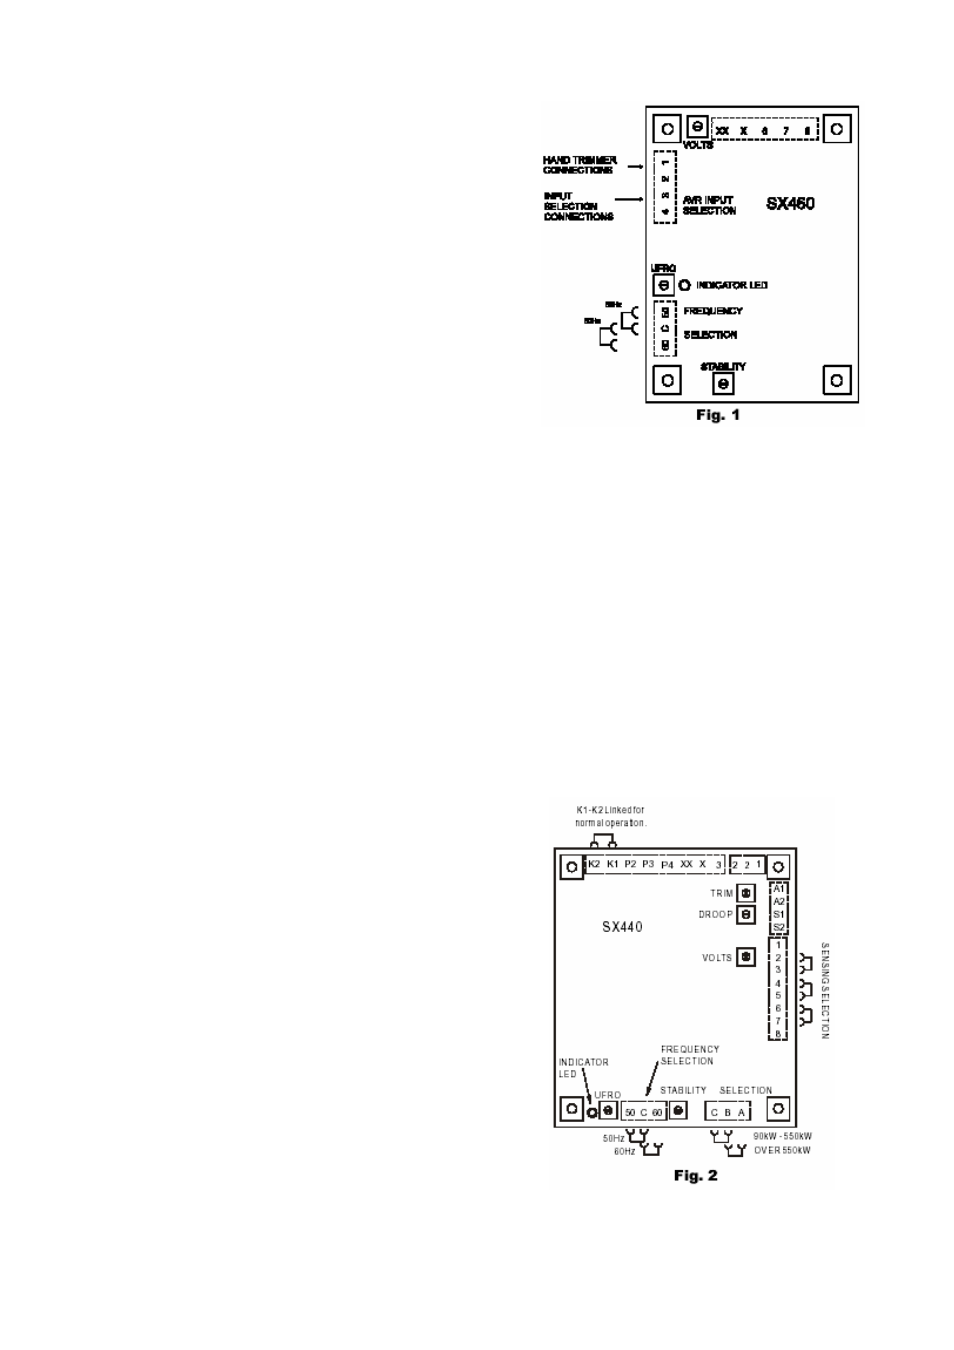 pi manufacturing ac generators page12 pi manufacturing ac generators user manual page 12 43 sx460 avr wiring diagram pdf at bayanpartner.co